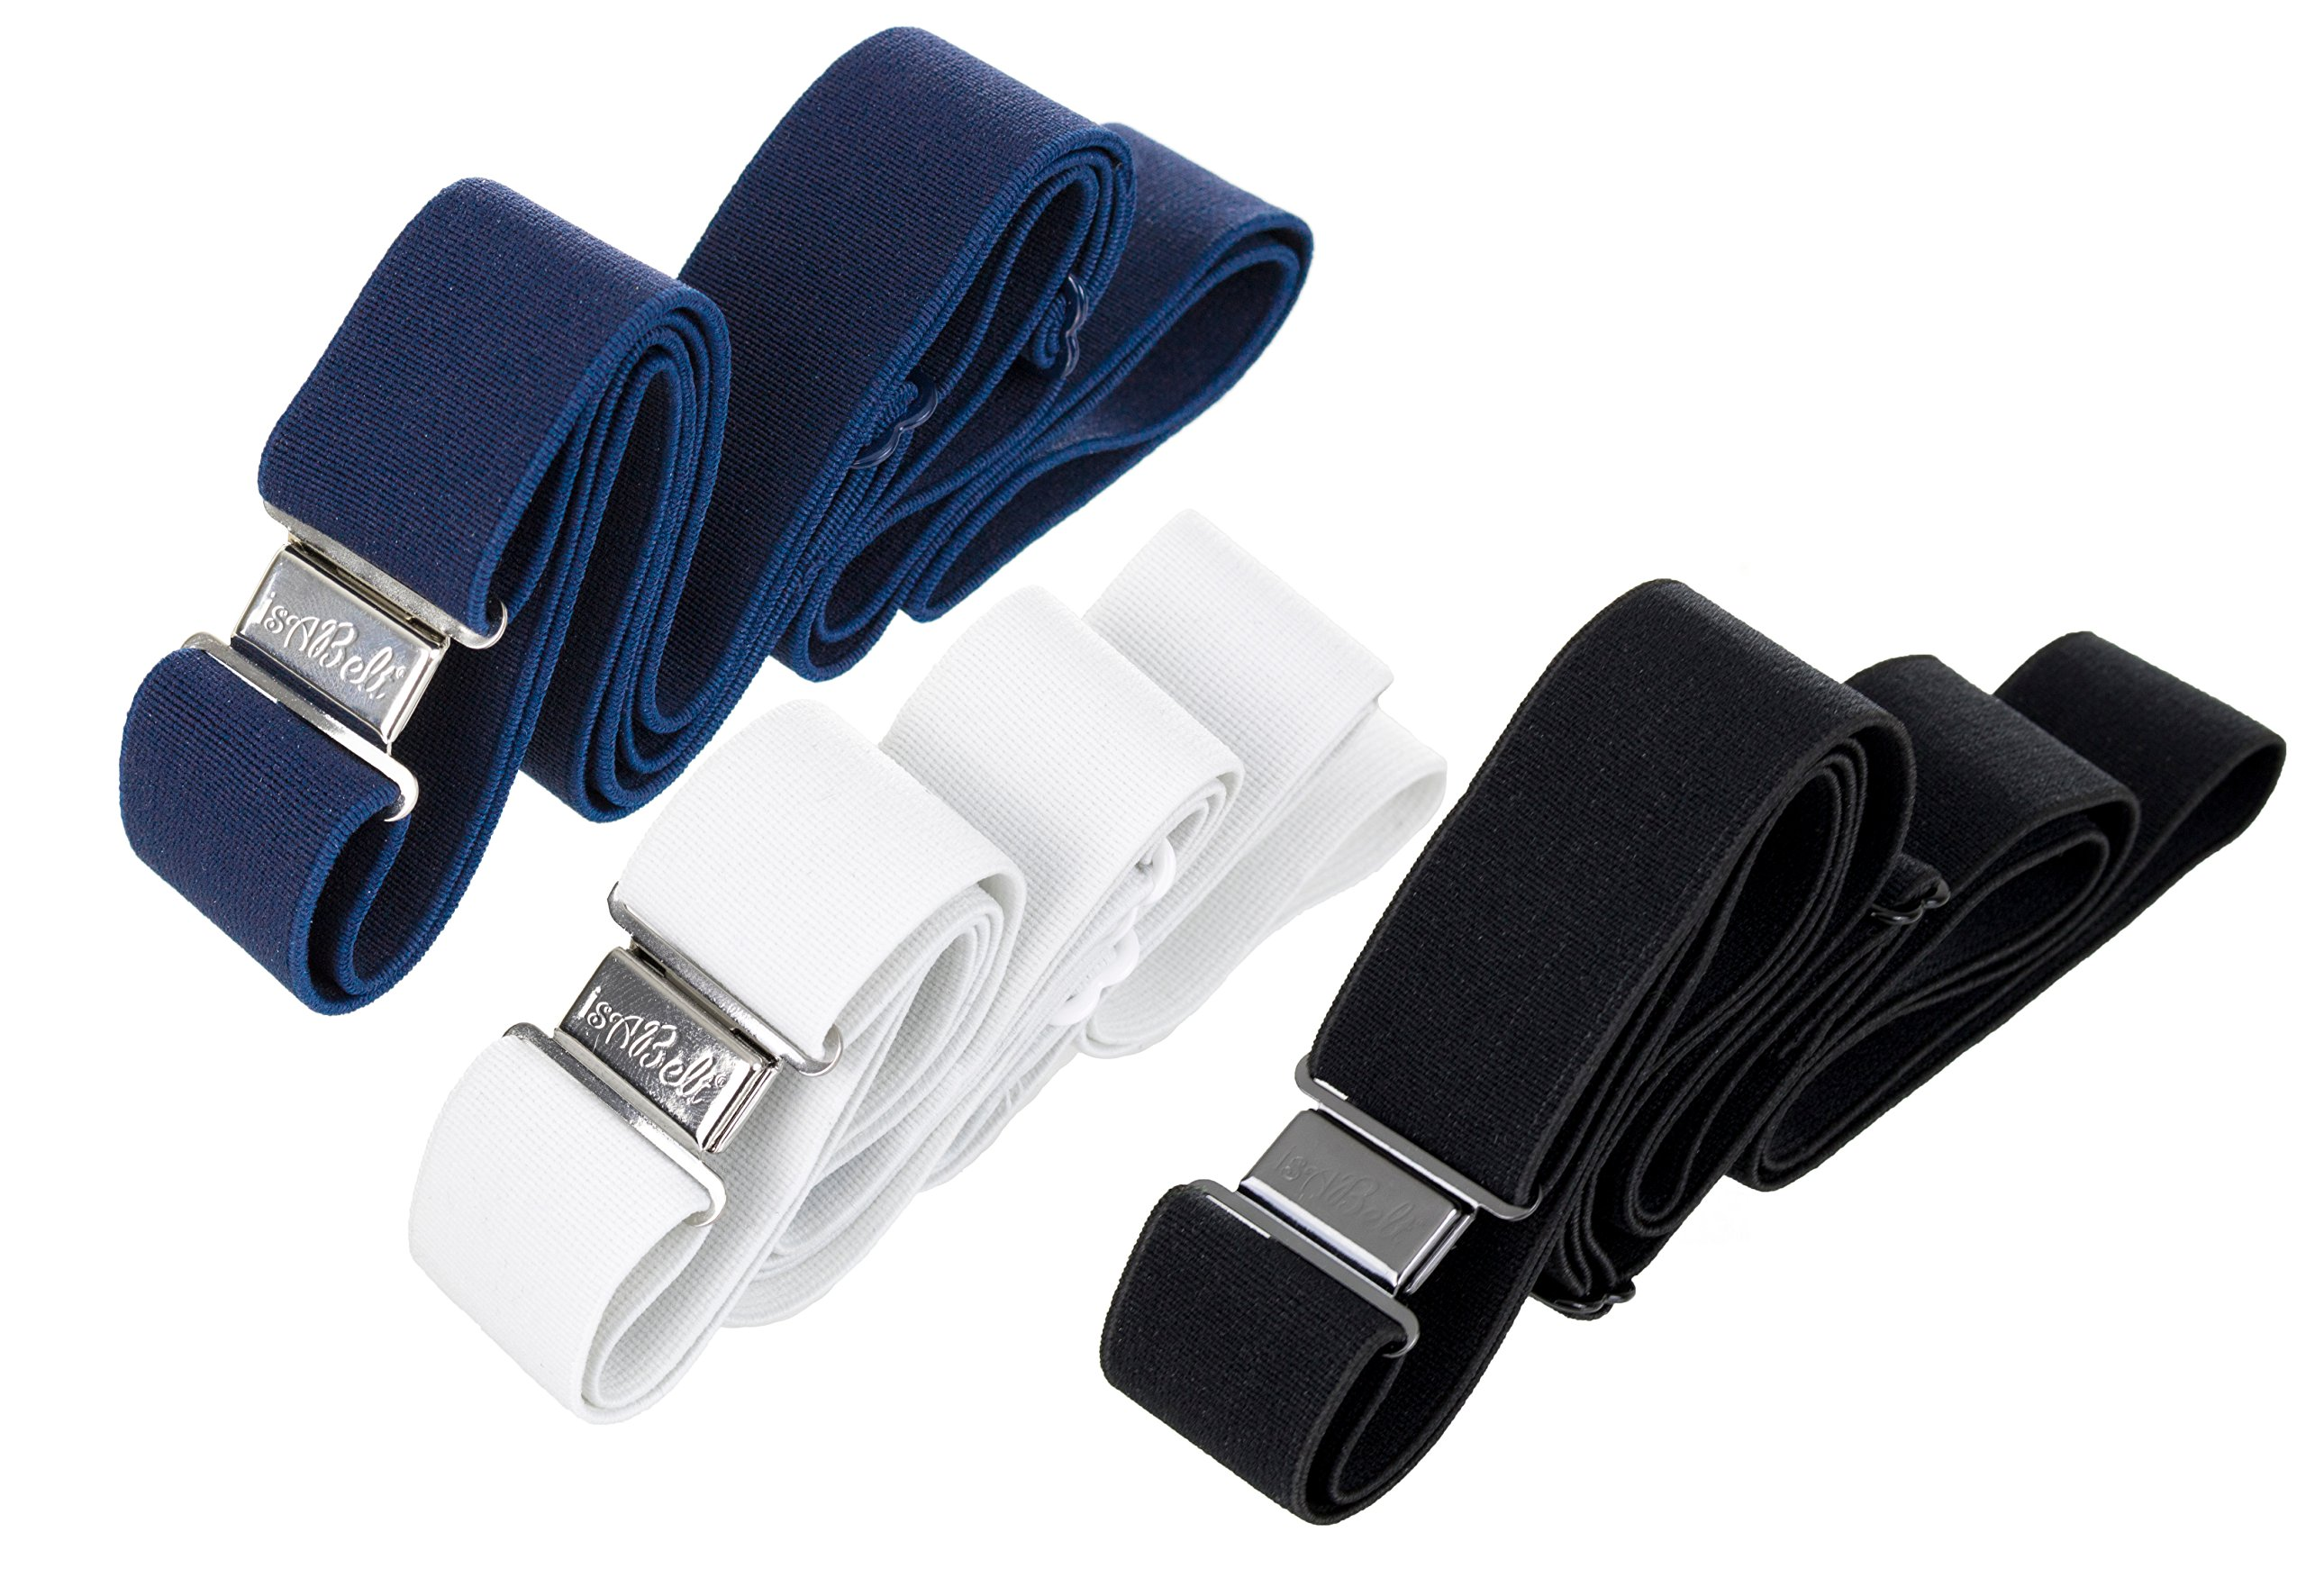 isABelt  No Show No Bulk Invisible Women's Stretch Fabric Belt with Flat Locking Magnetic Clasp (3-Pack - Colors: White, Blue, Black)